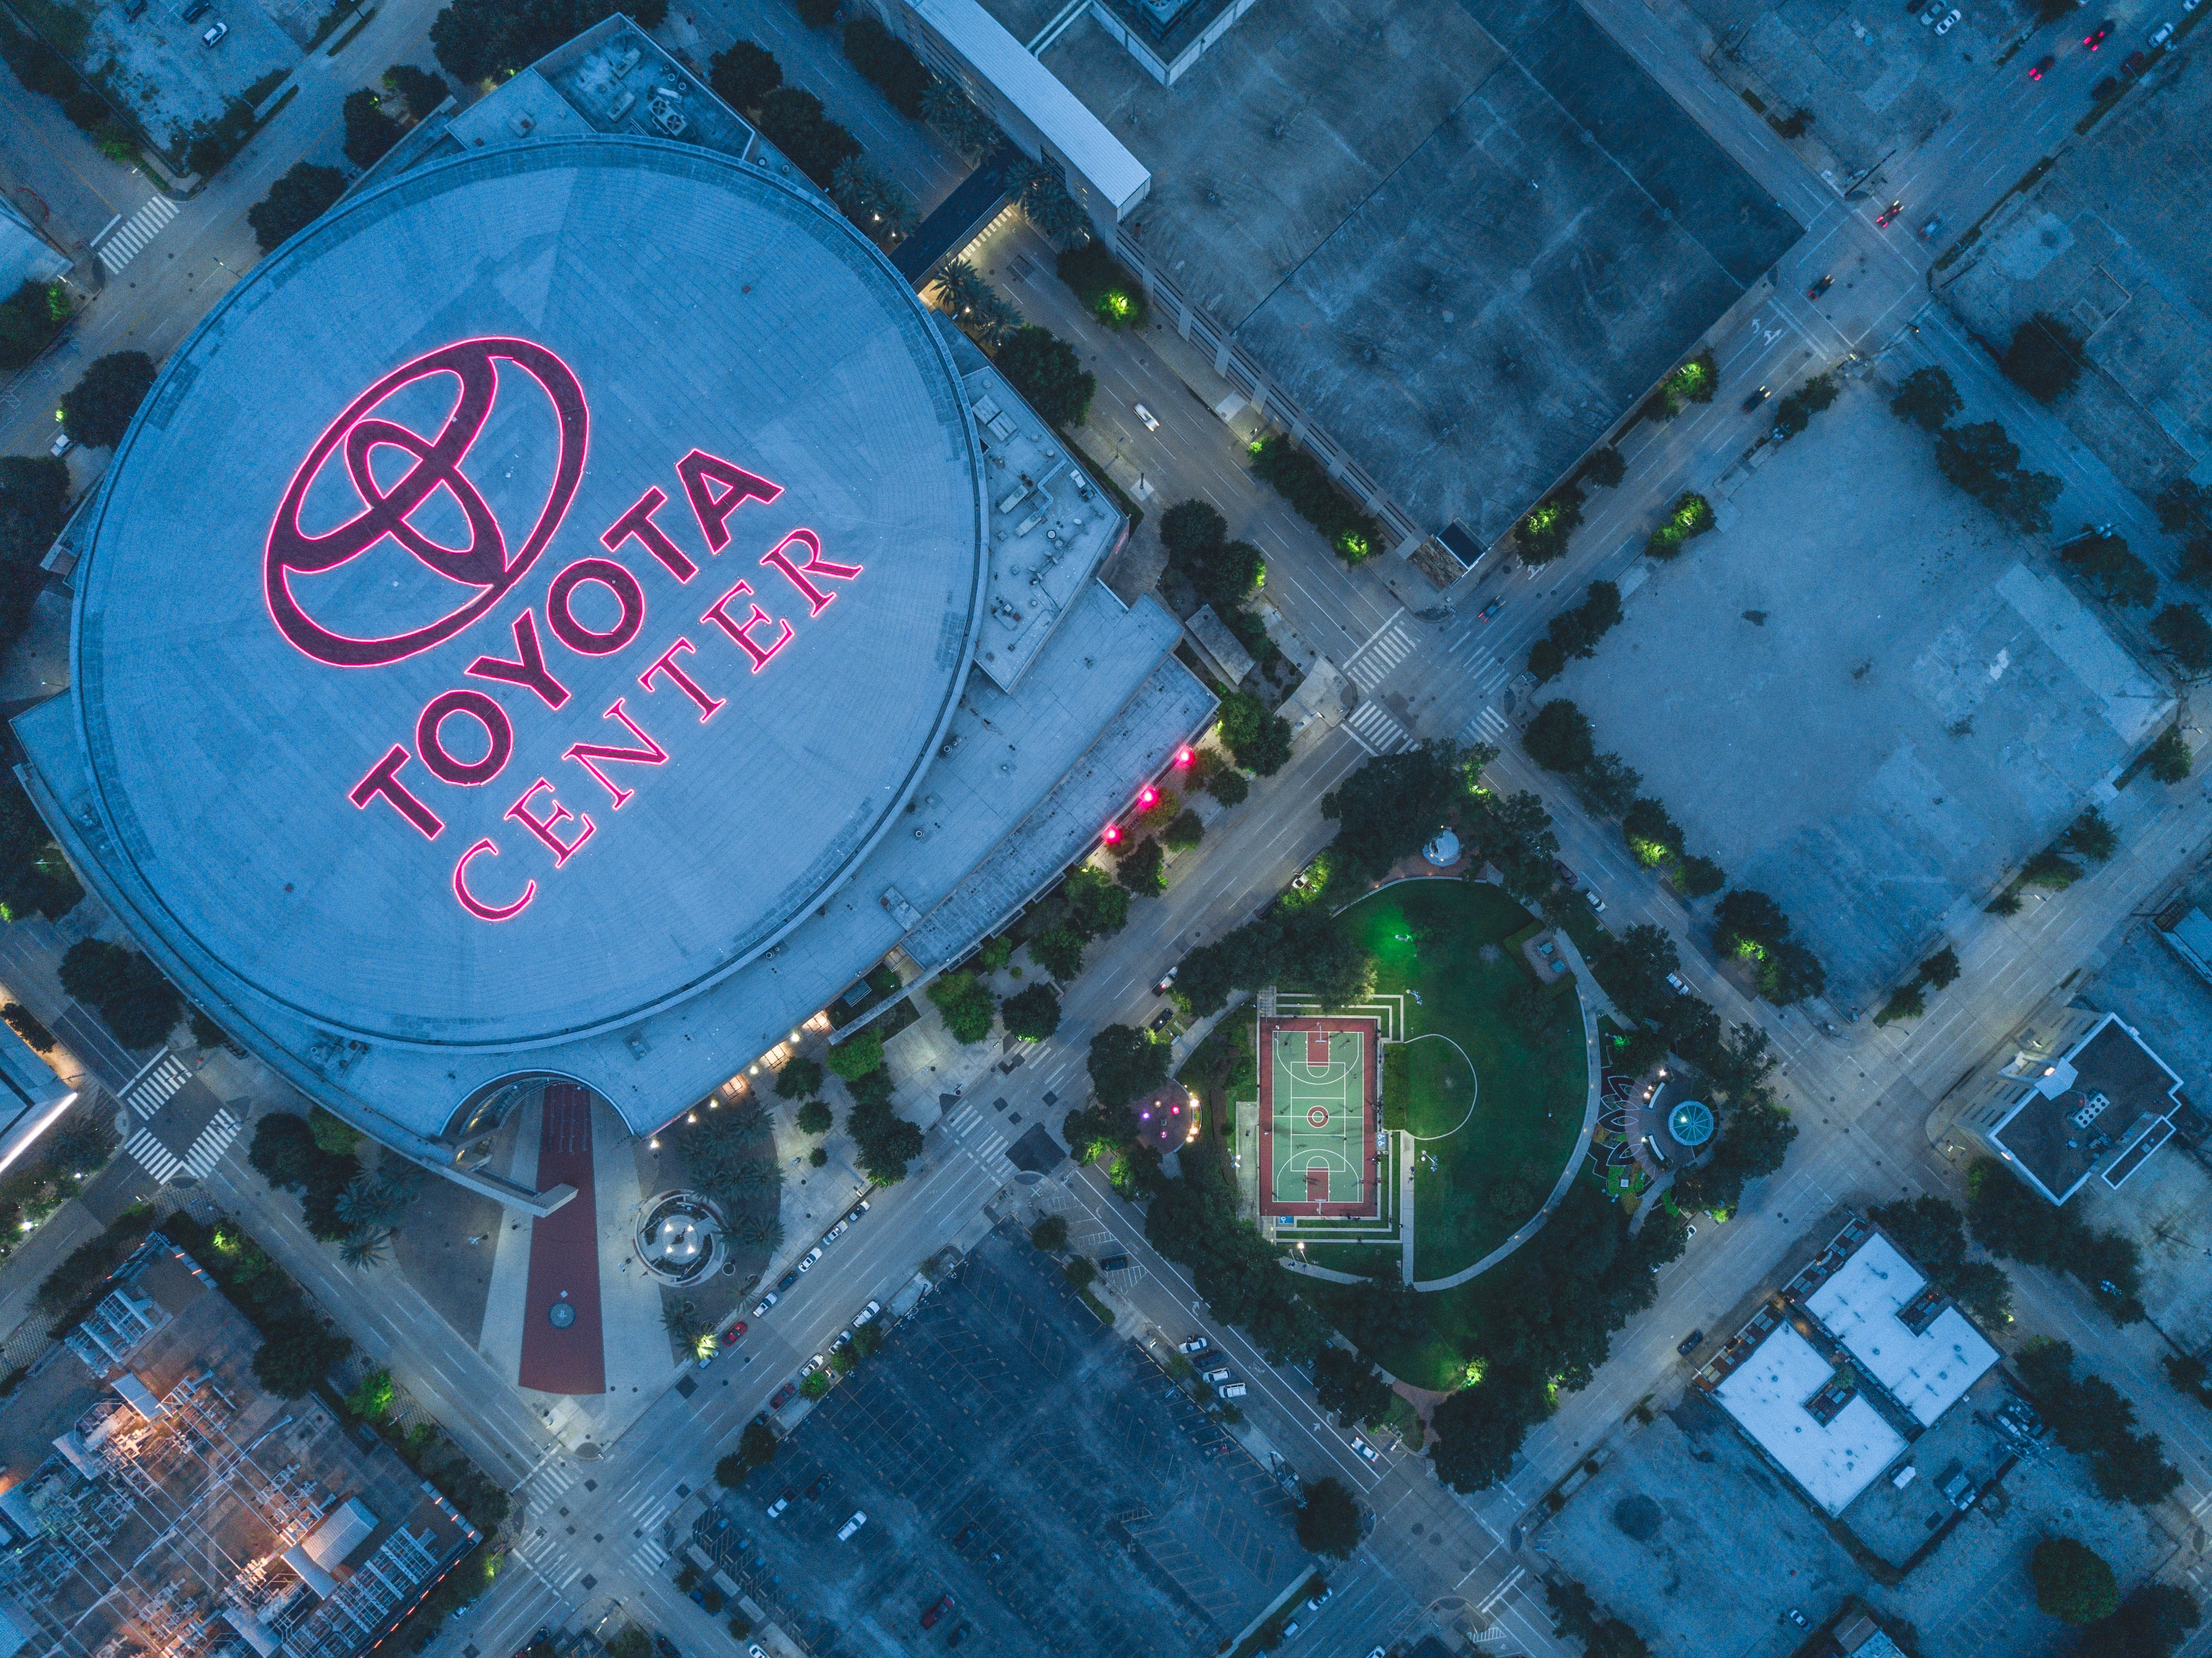 aerial photo of Toyota Center arena